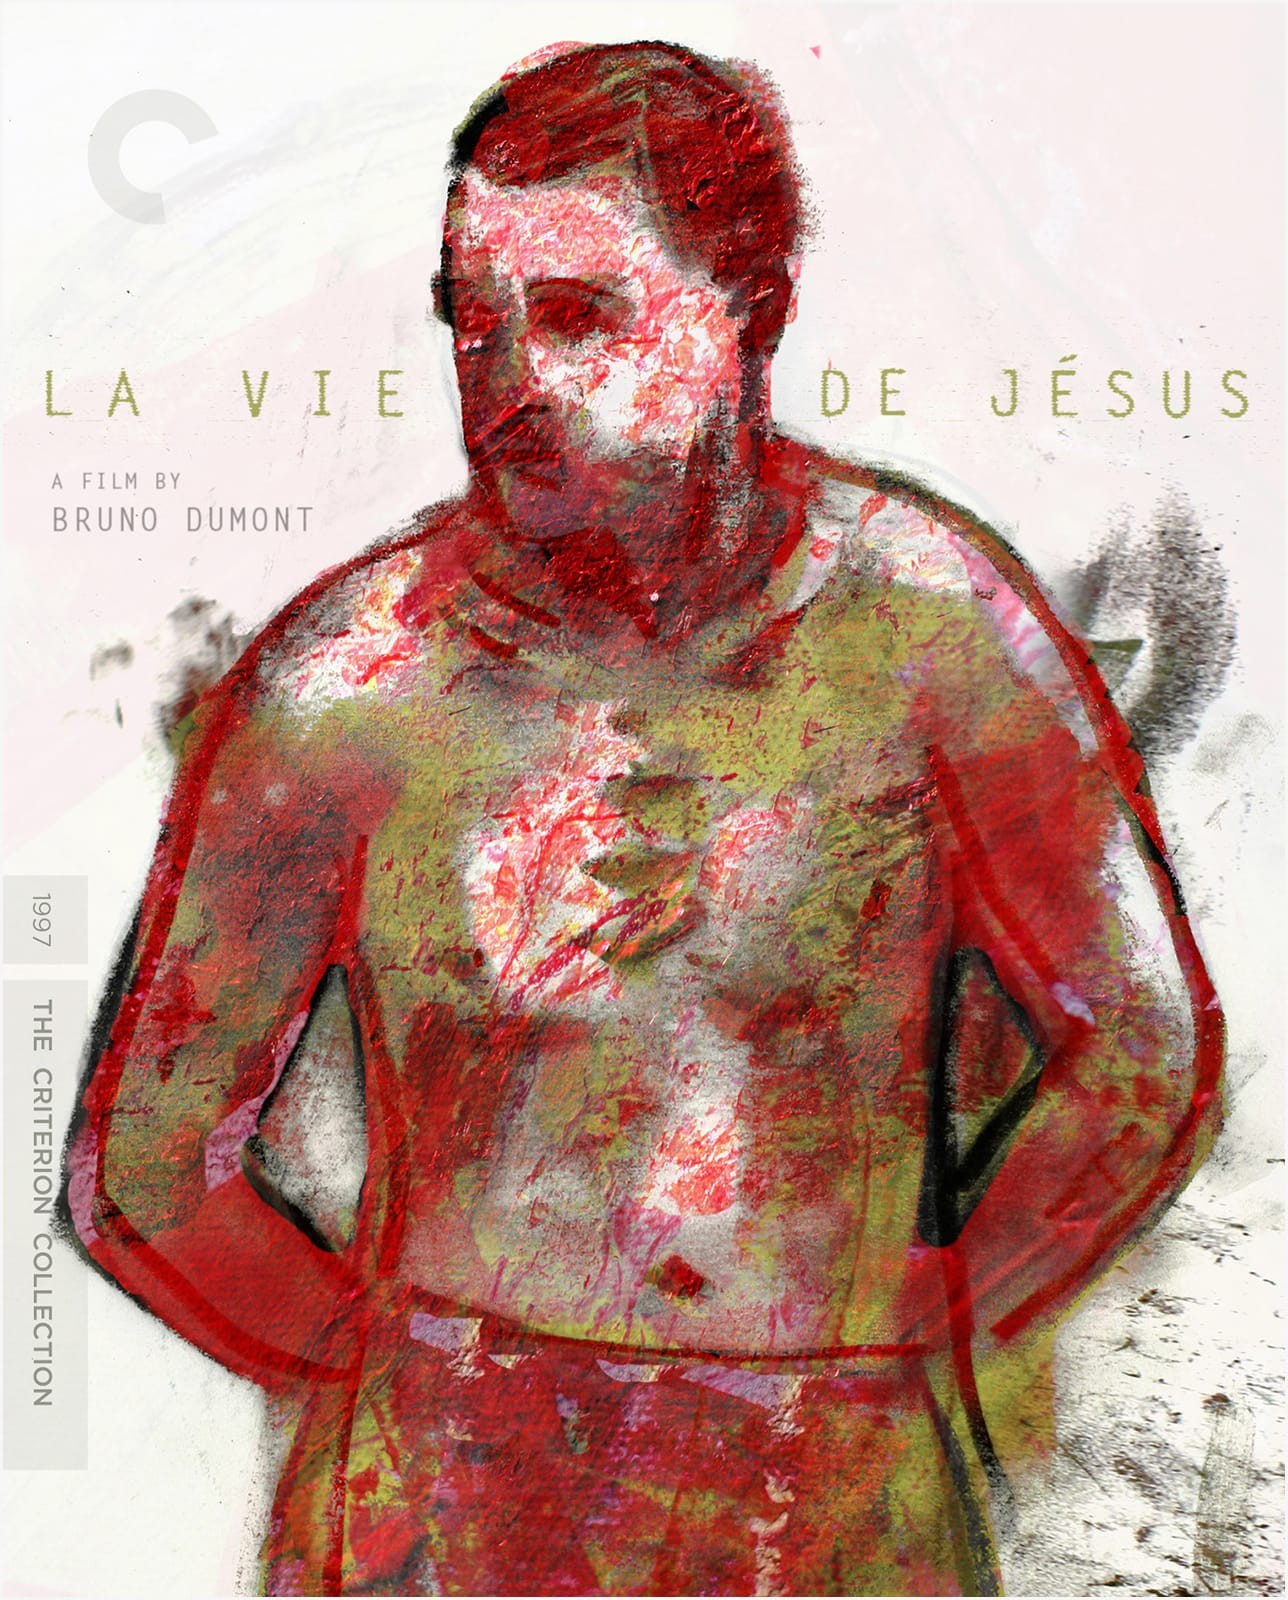 La vie de Jésus (1997) | The Criterion Collection